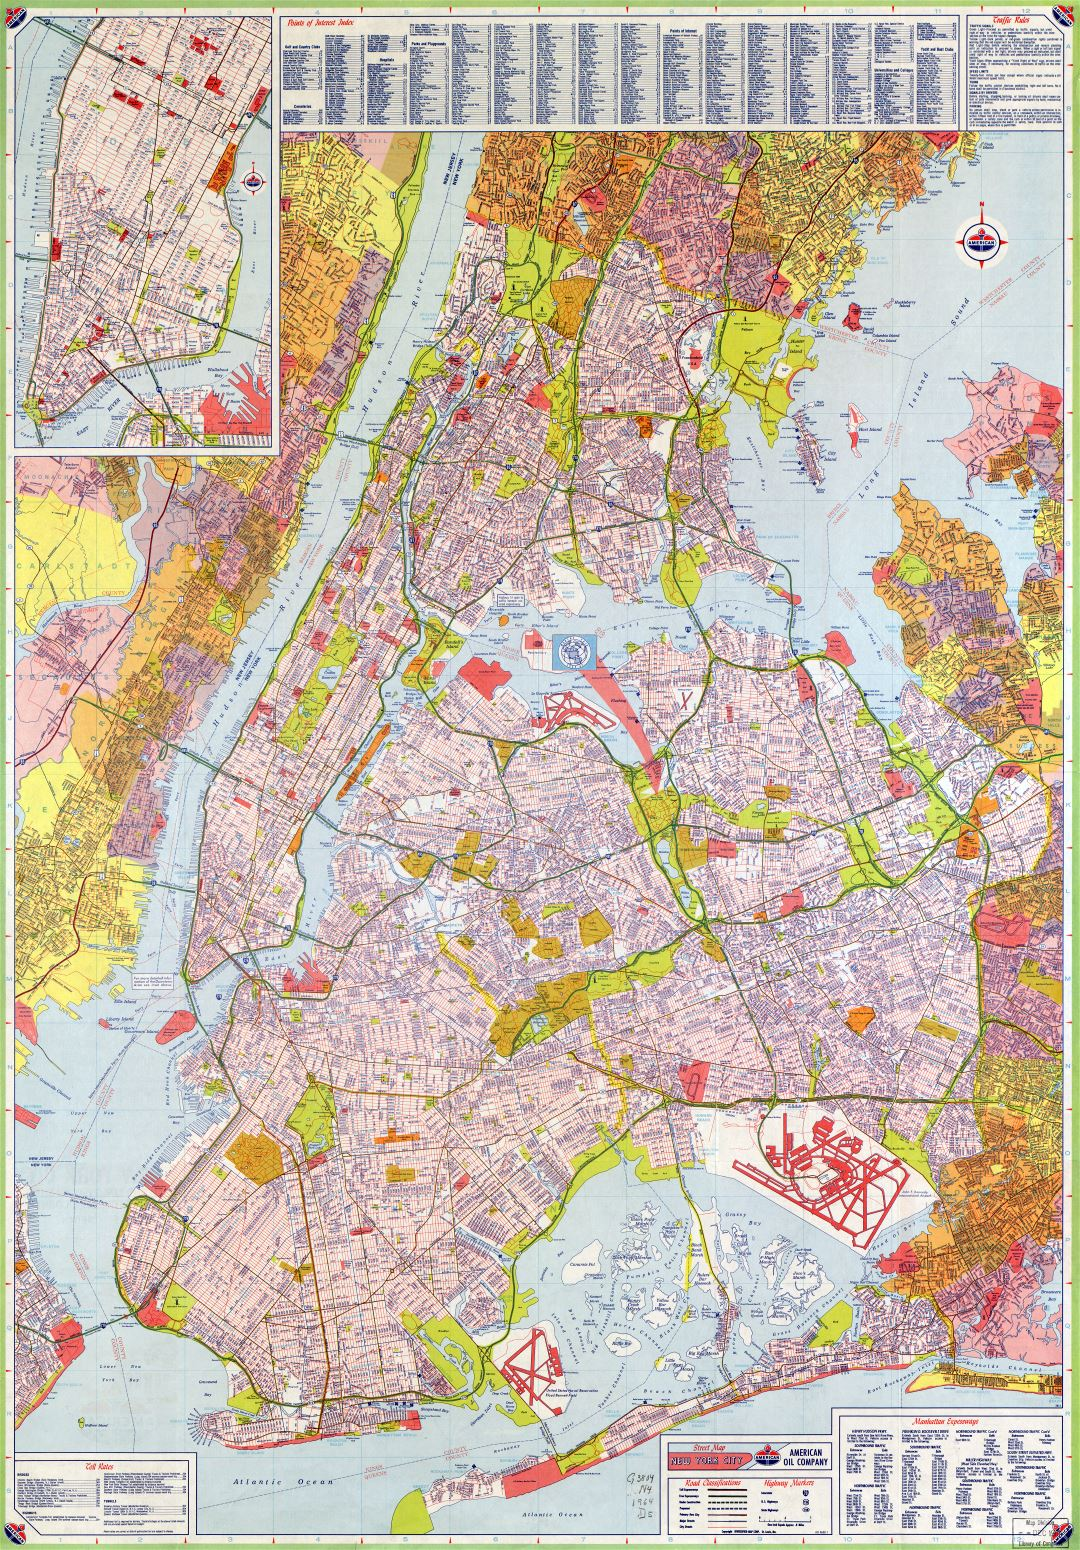 Large Scale Detailed Road Map Of New York City Usa With